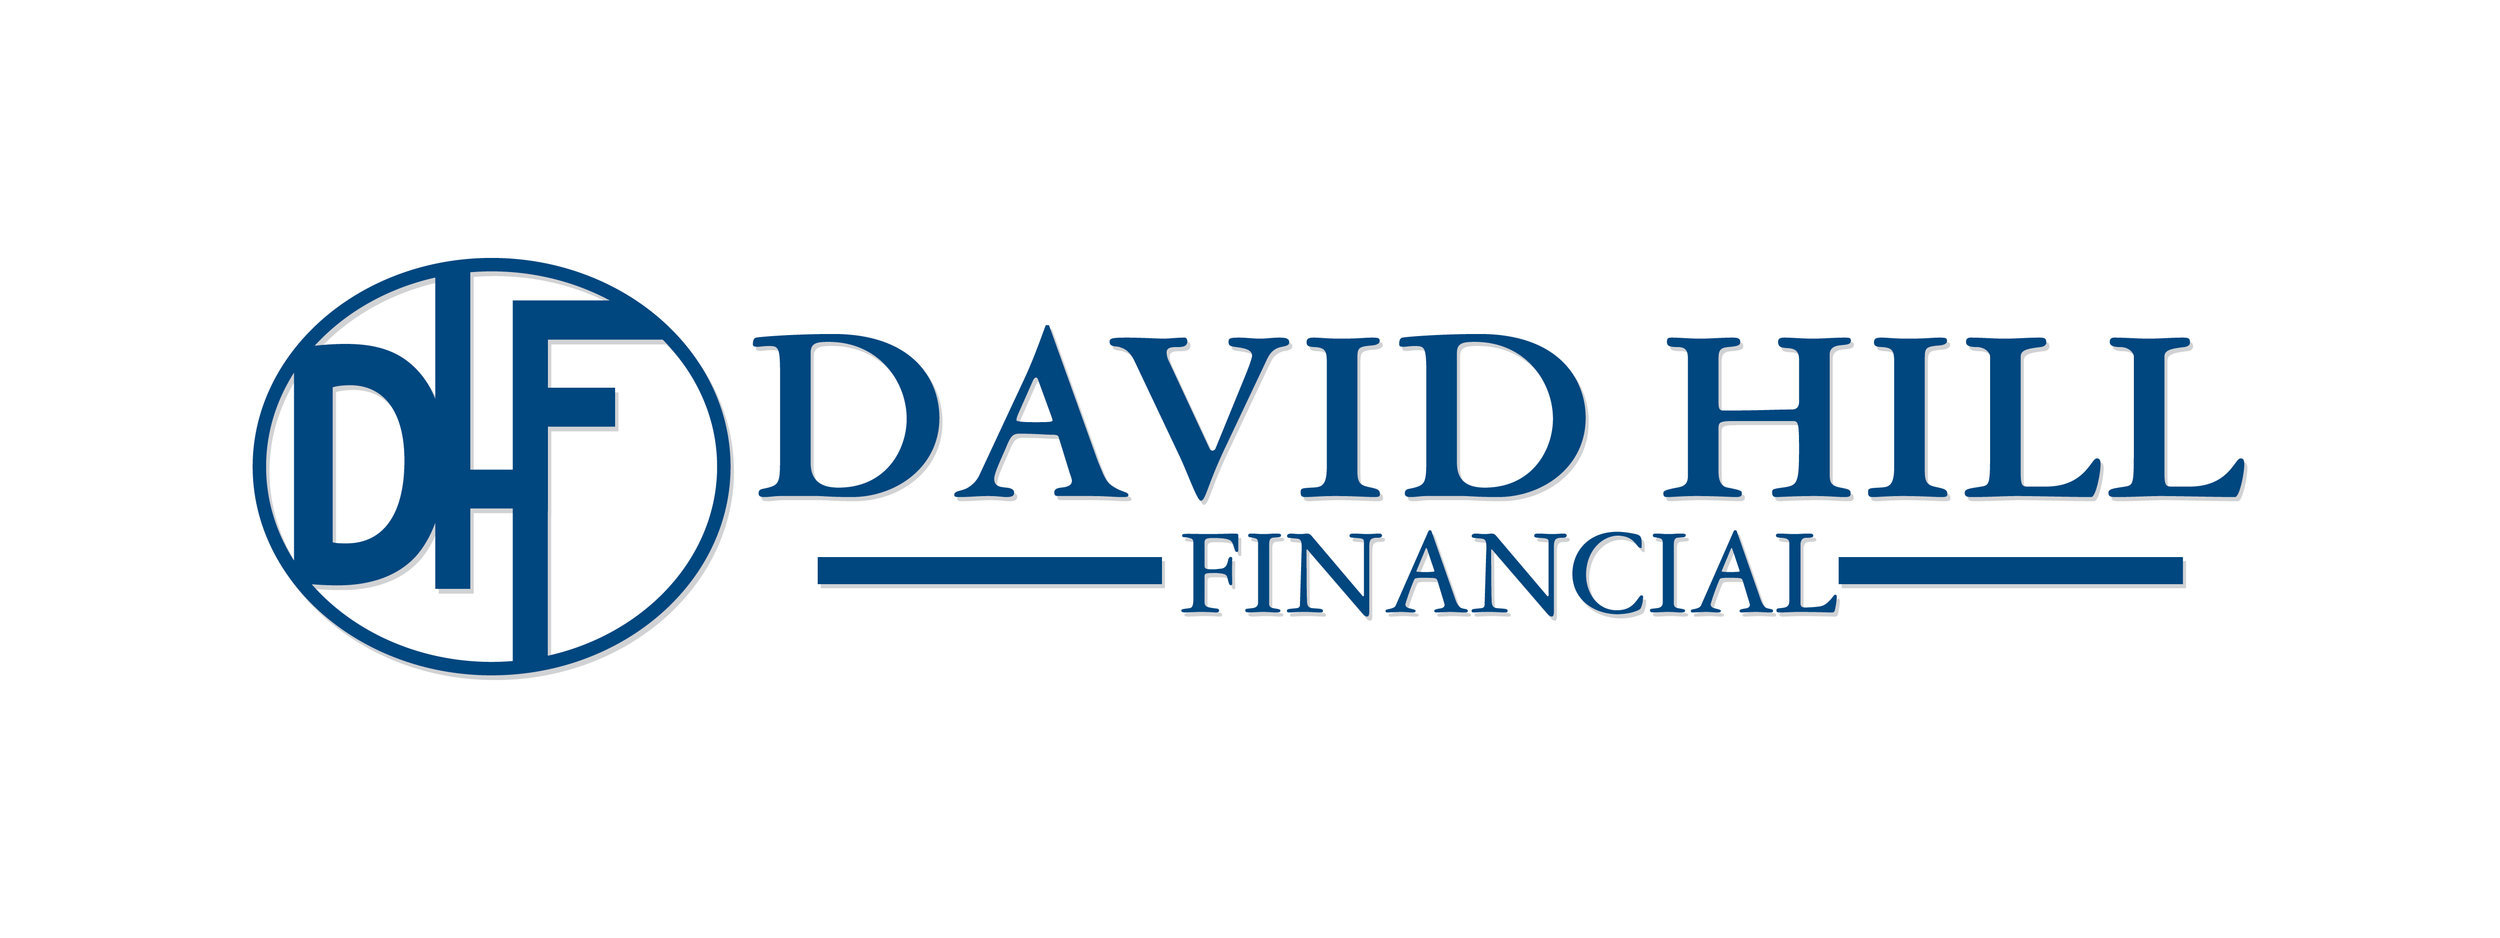 david hill financial services logo